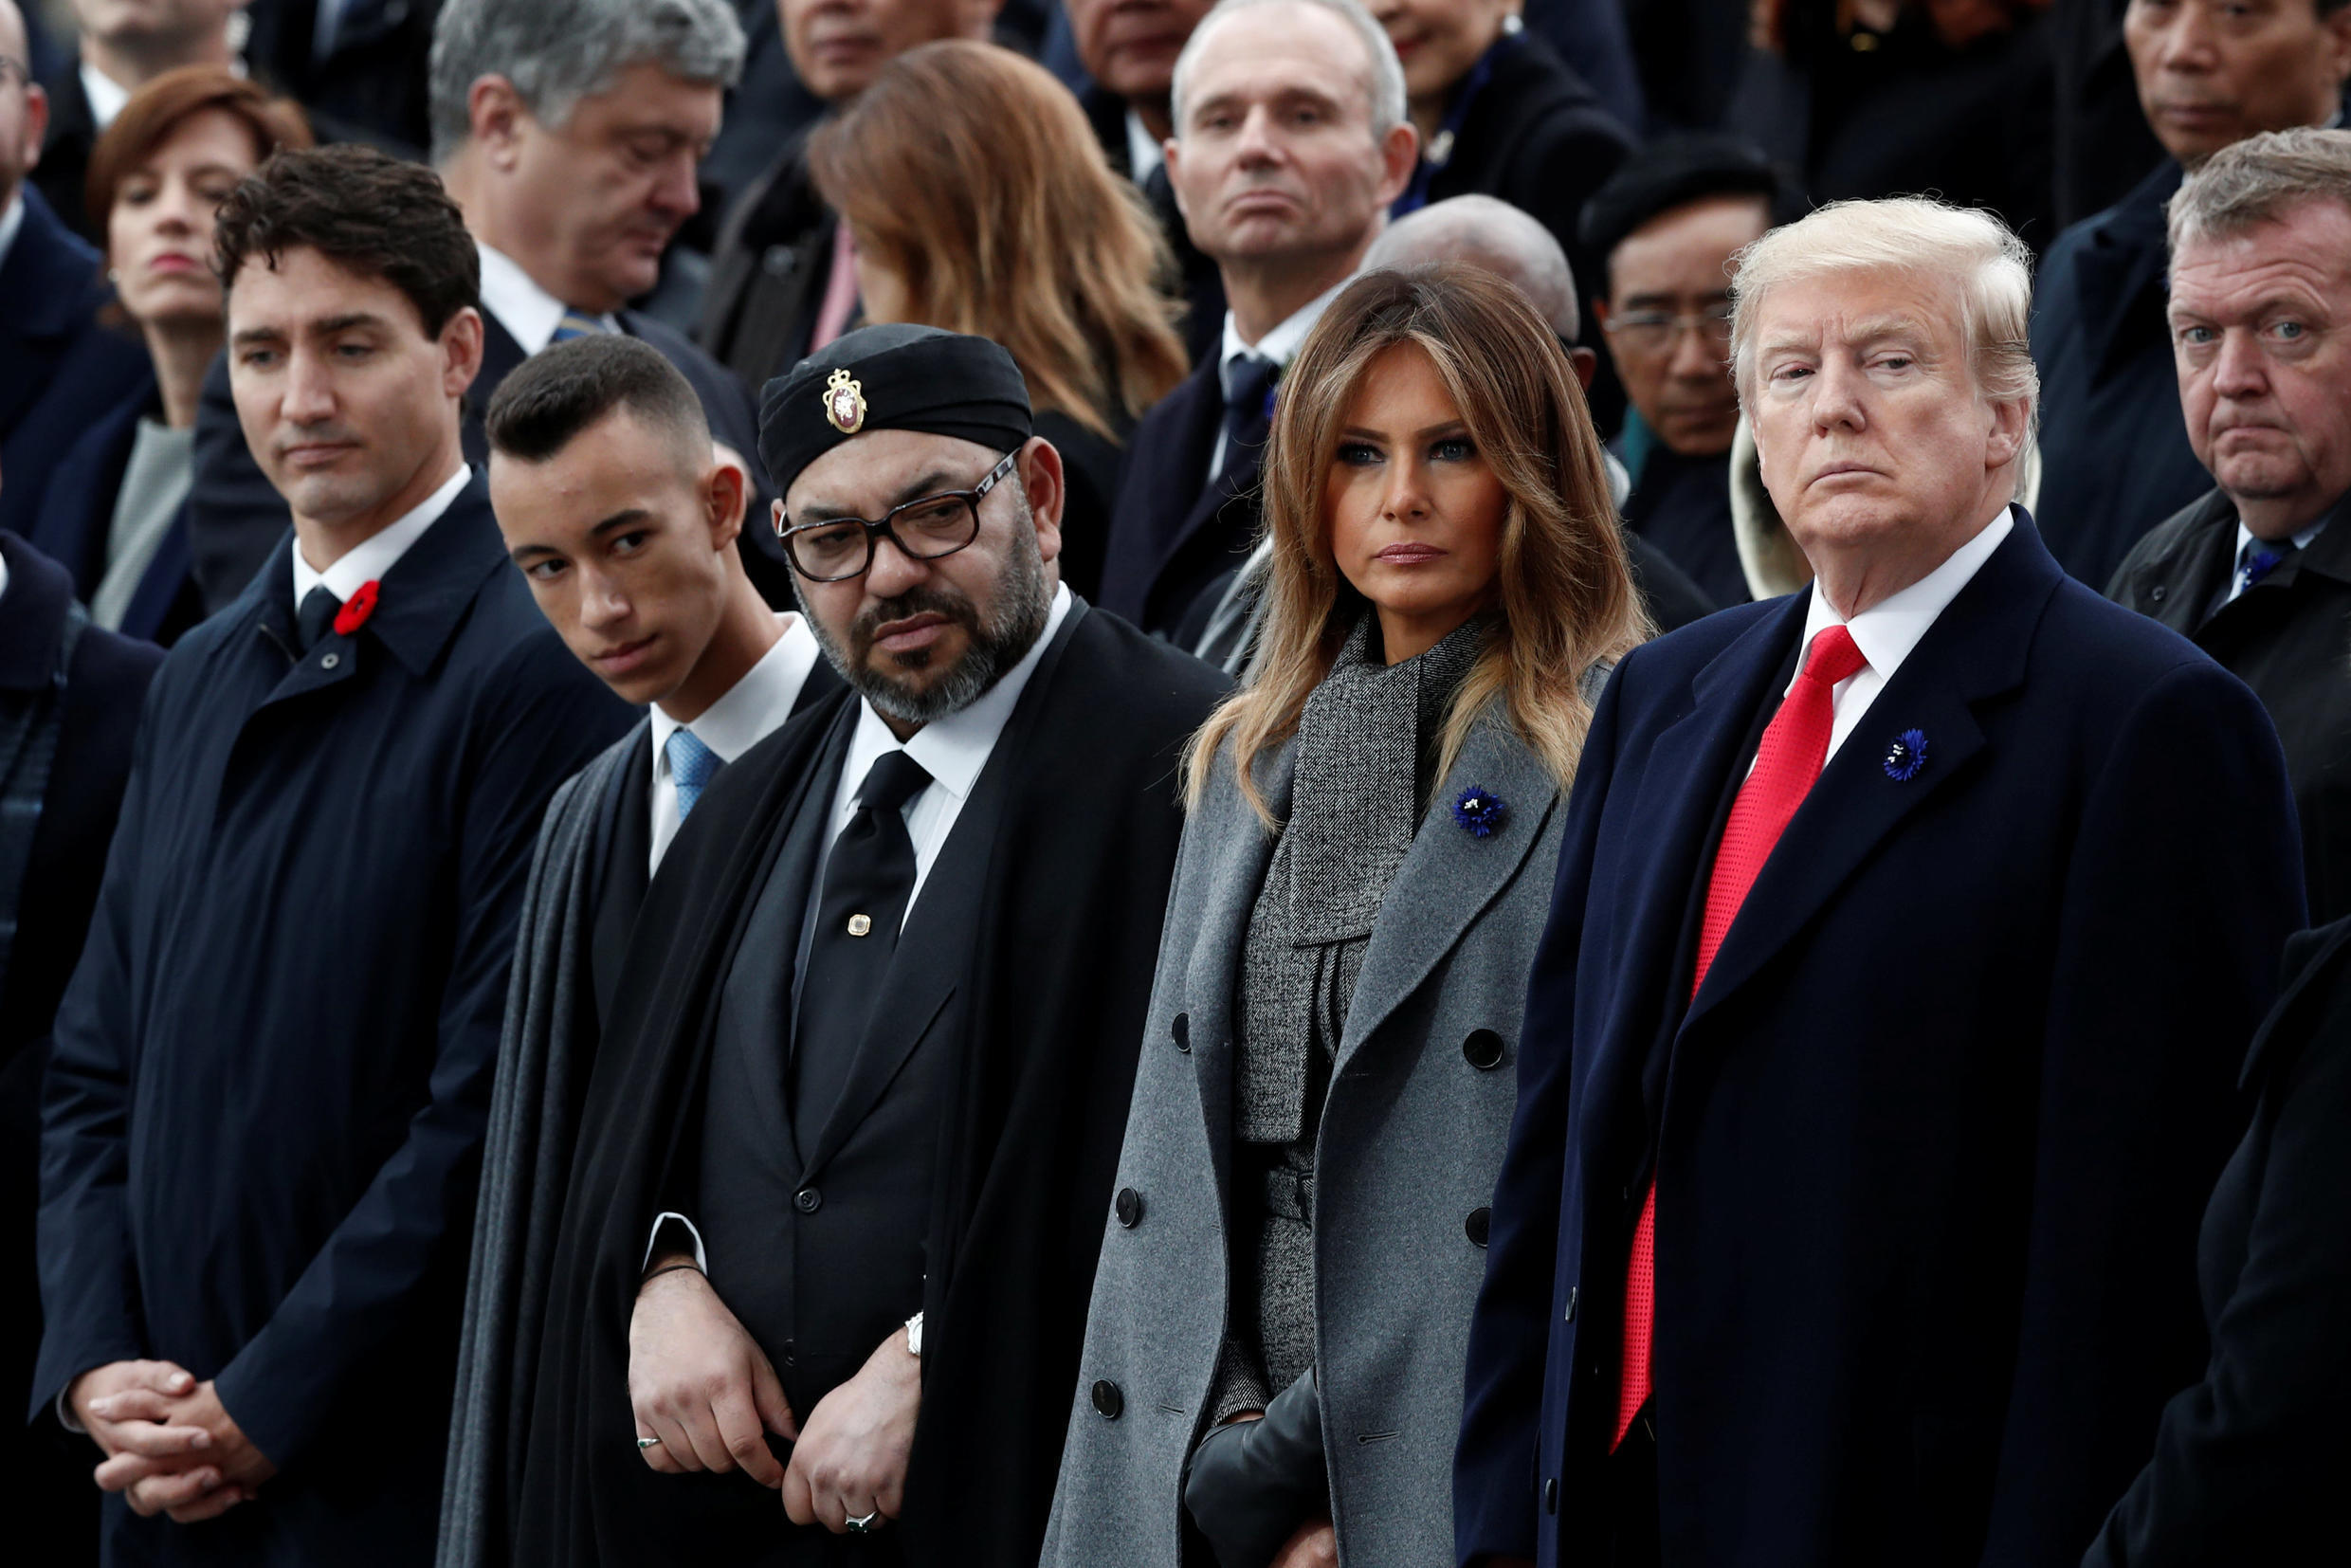 U.S. President Donald Trump, first lady Melania Trump, Morocco's King Mohammed VI, his son Crown Prince Moulay and Canadian Prime Minister Justin Trudeau attend a commemoration ceremony for Armistice Day, 100 years after the end of the First World War.